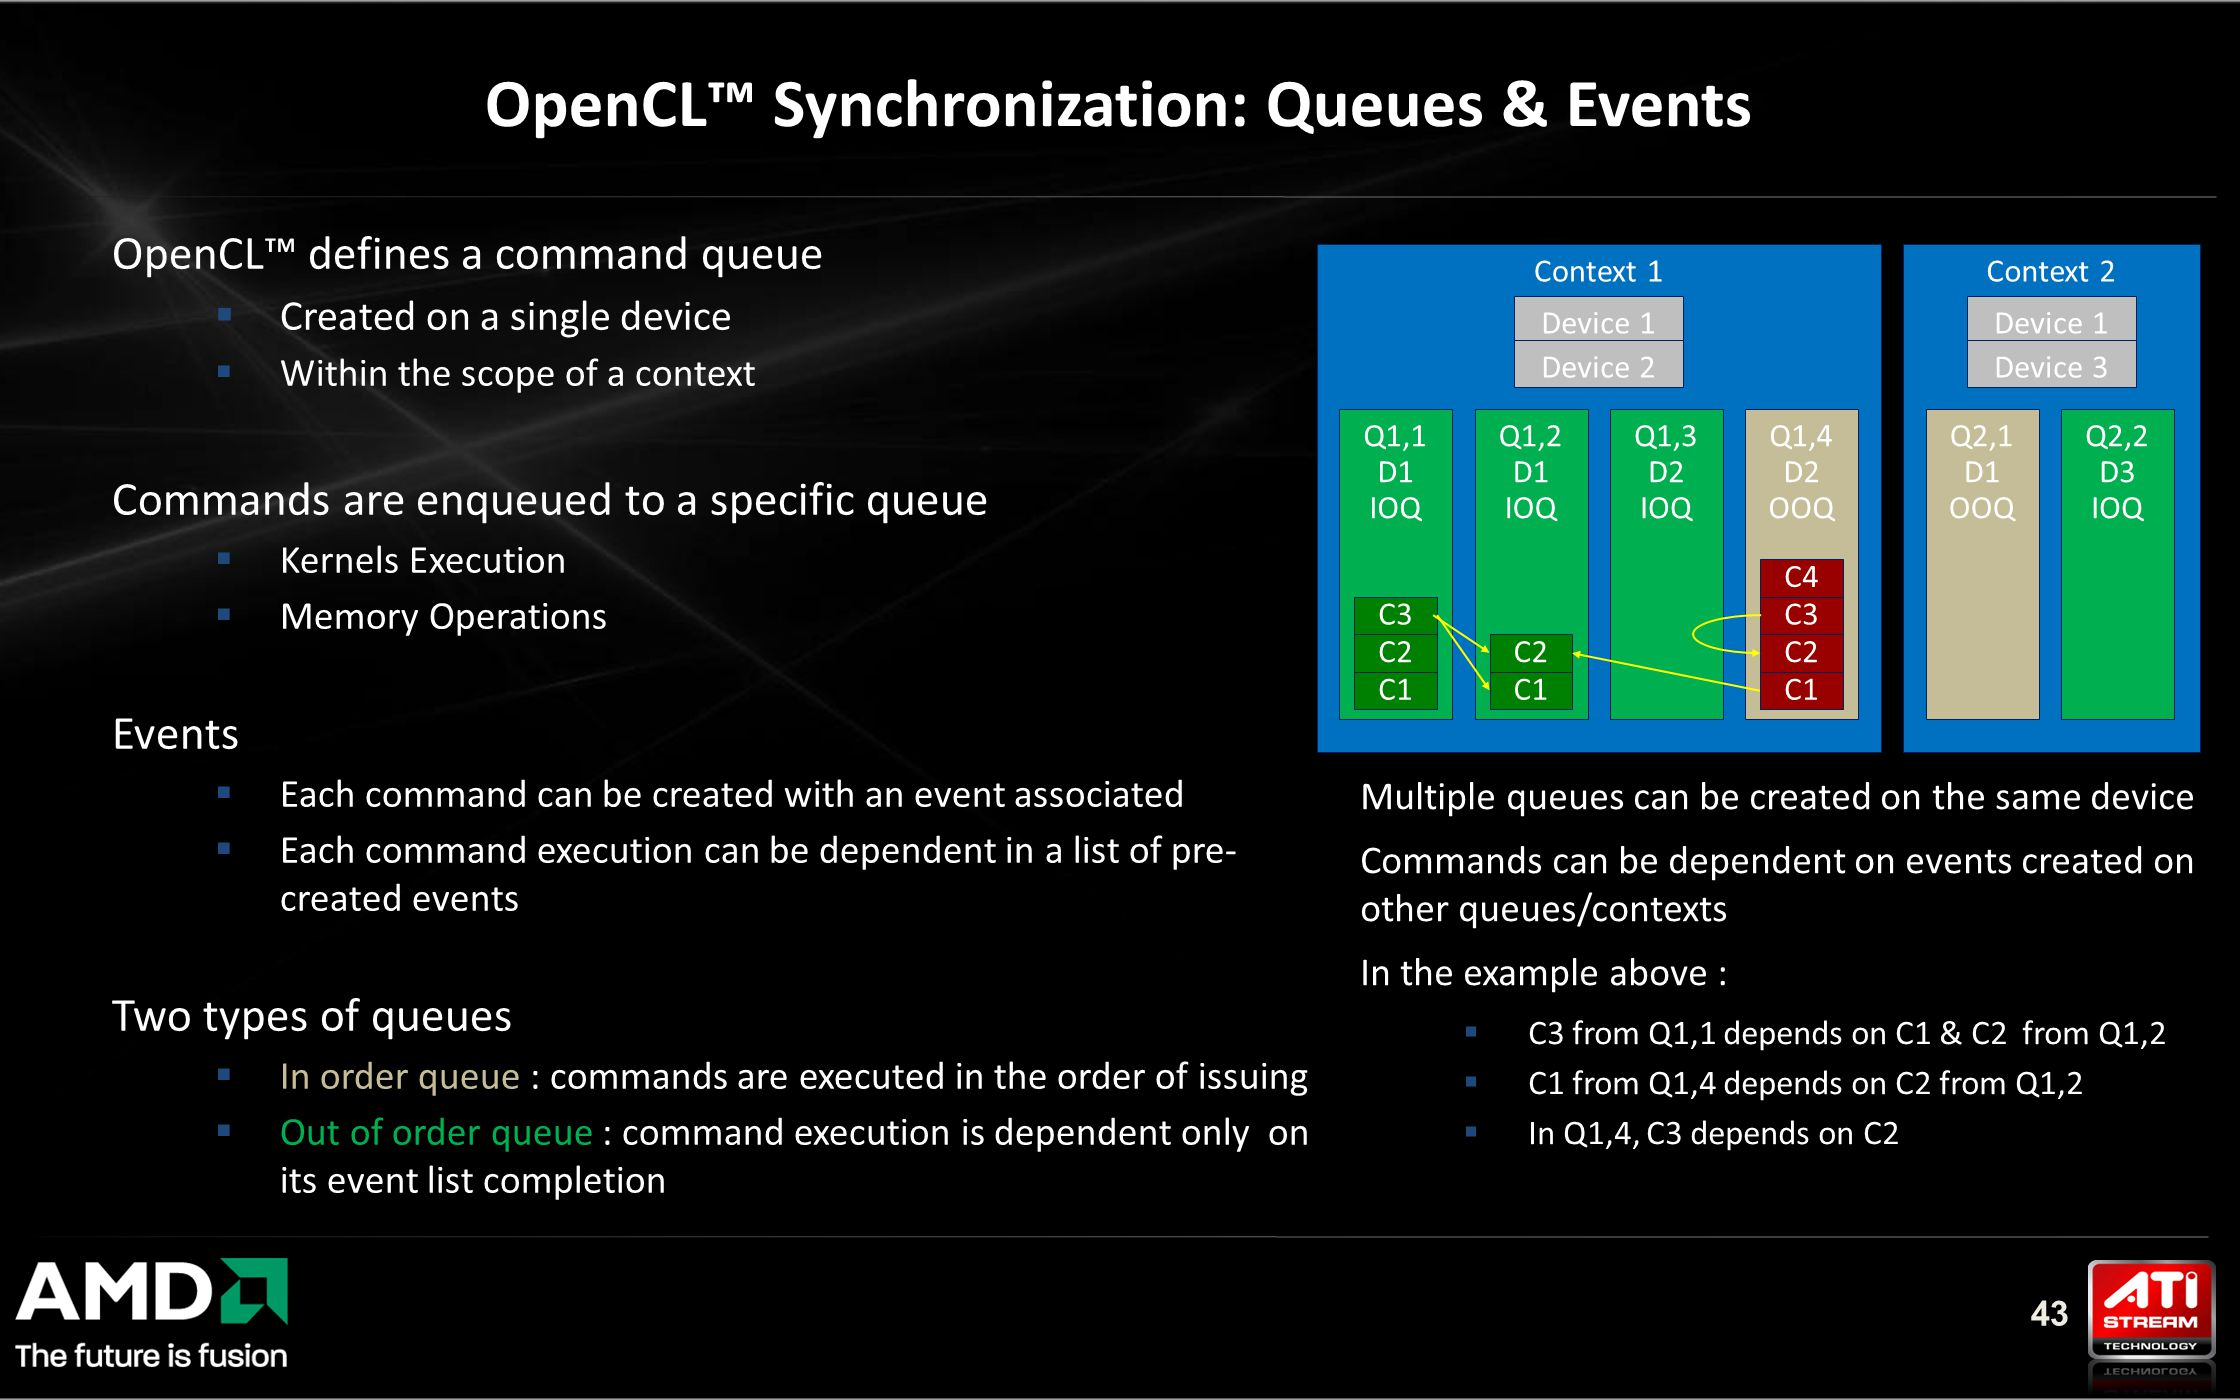 43 OpenCL™ defines a command queue  Created on a single device  Within the scope of a context Commands are enqueued to a specific queue  Kernels Execution  Memory Operations Events  Each command can be created with an event associated  Each command execution can be dependent in a list of pre- created events Two types of queues  In order queue : commands are executed in the order of issuing  Out of order queue : command execution is dependent only on its event list completion OpenCL™ Synchronization: Queues & Events Multiple queues can be created on the same device Commands can be dependent on events created on other queues/contexts In the example above :  C3 from Q1,1 depends on C1 & C2 from Q1,2  C1 from Q1,4 depends on C2 from Q1,2  In Q1,4, C3 depends on C2 Context 1 Q1,2 D1 IOQ Q1,1 D1 IOQ Q1,3 D2 IOQ Q1,4 D2 OOQ Context 2 Q2,2 D3 IOQ Q2,1 D1 OOQ Device 1 Device 2 Device 1 Device 3 C1 C2 C3 C1 C2 C1 C2 C3 C4